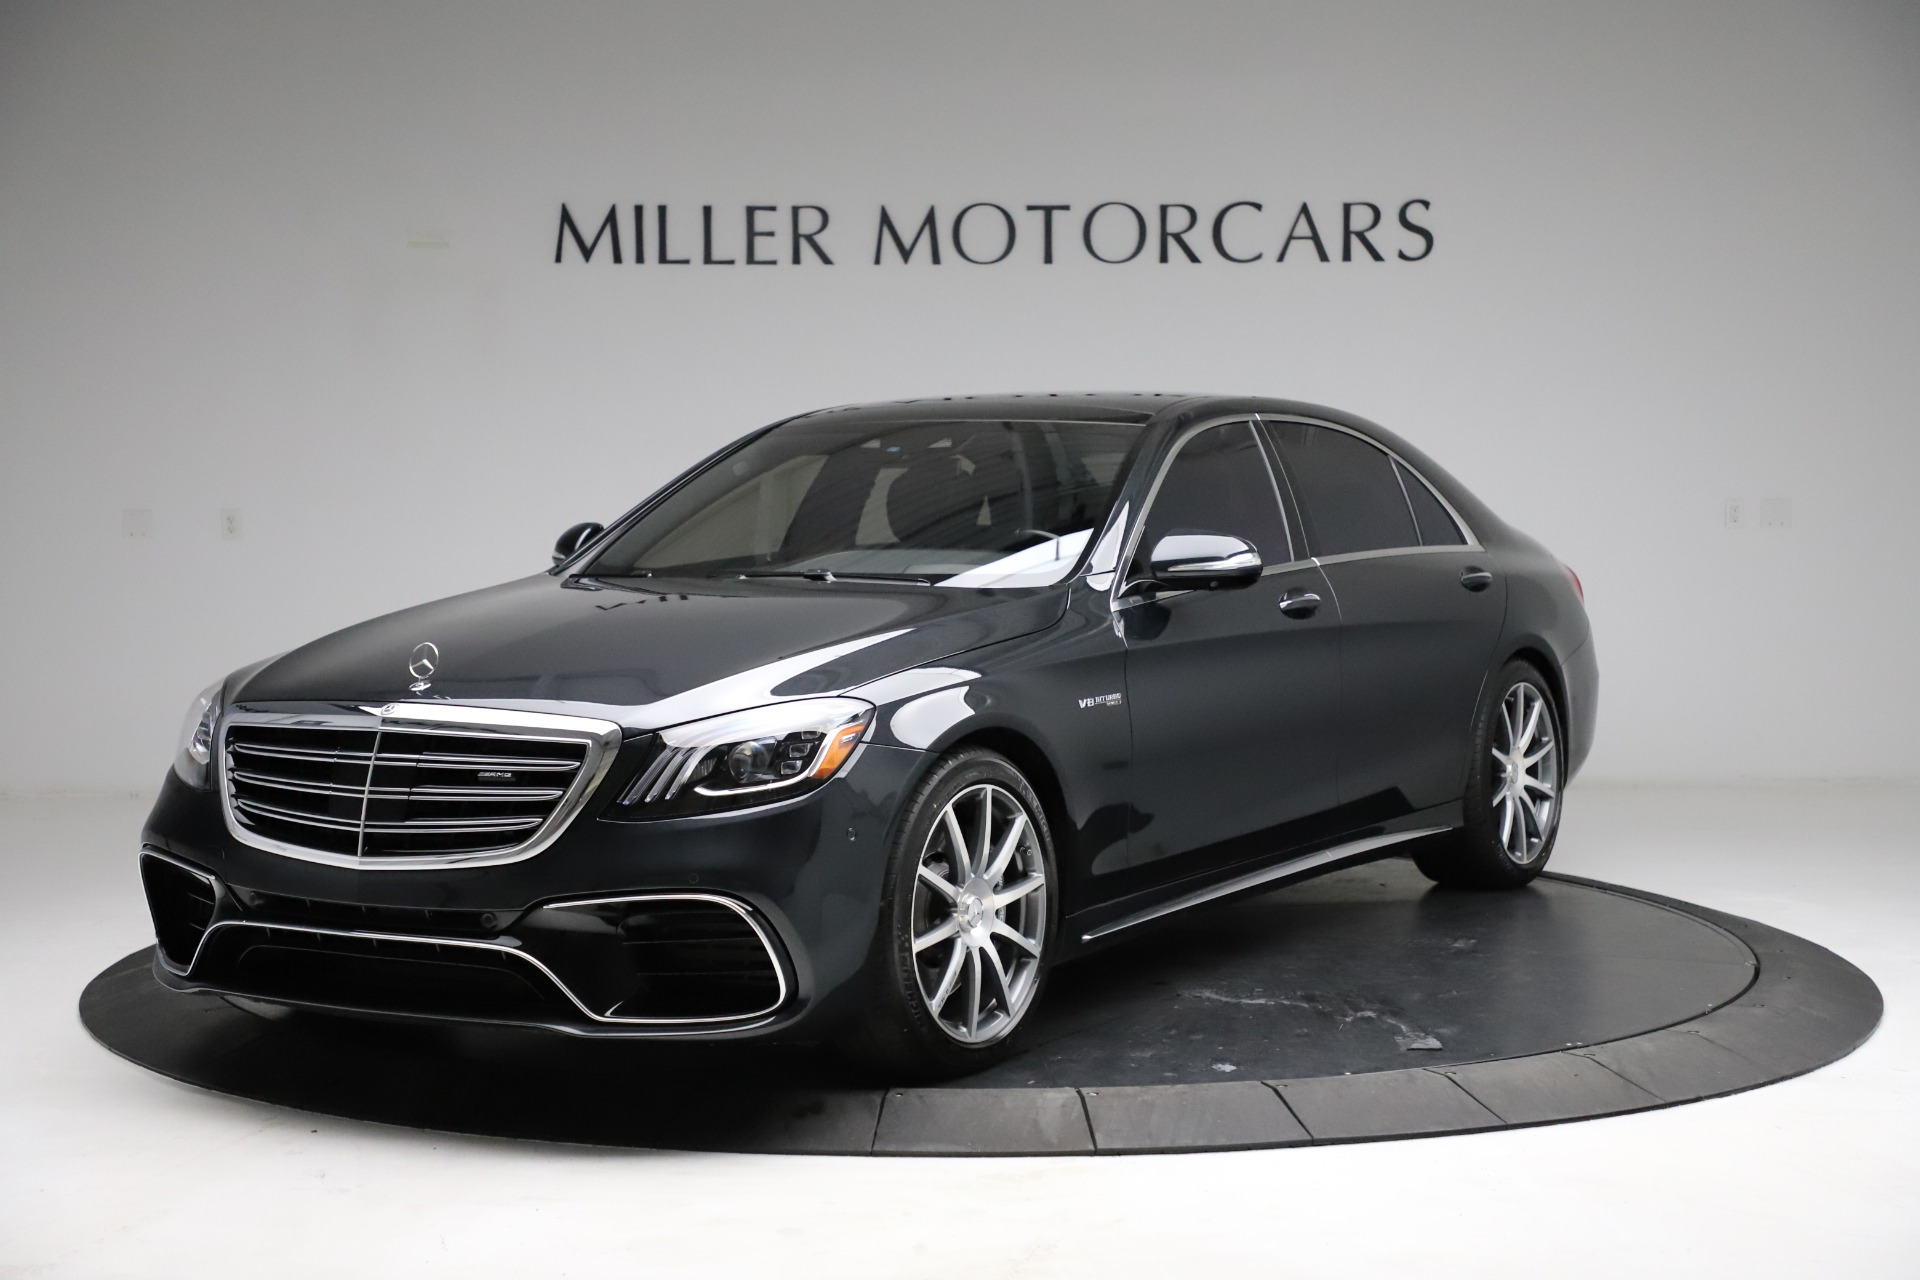 Used 2019 Mercedes-Benz S-Class AMG S 63 for sale $122,900 at Pagani of Greenwich in Greenwich CT 06830 1